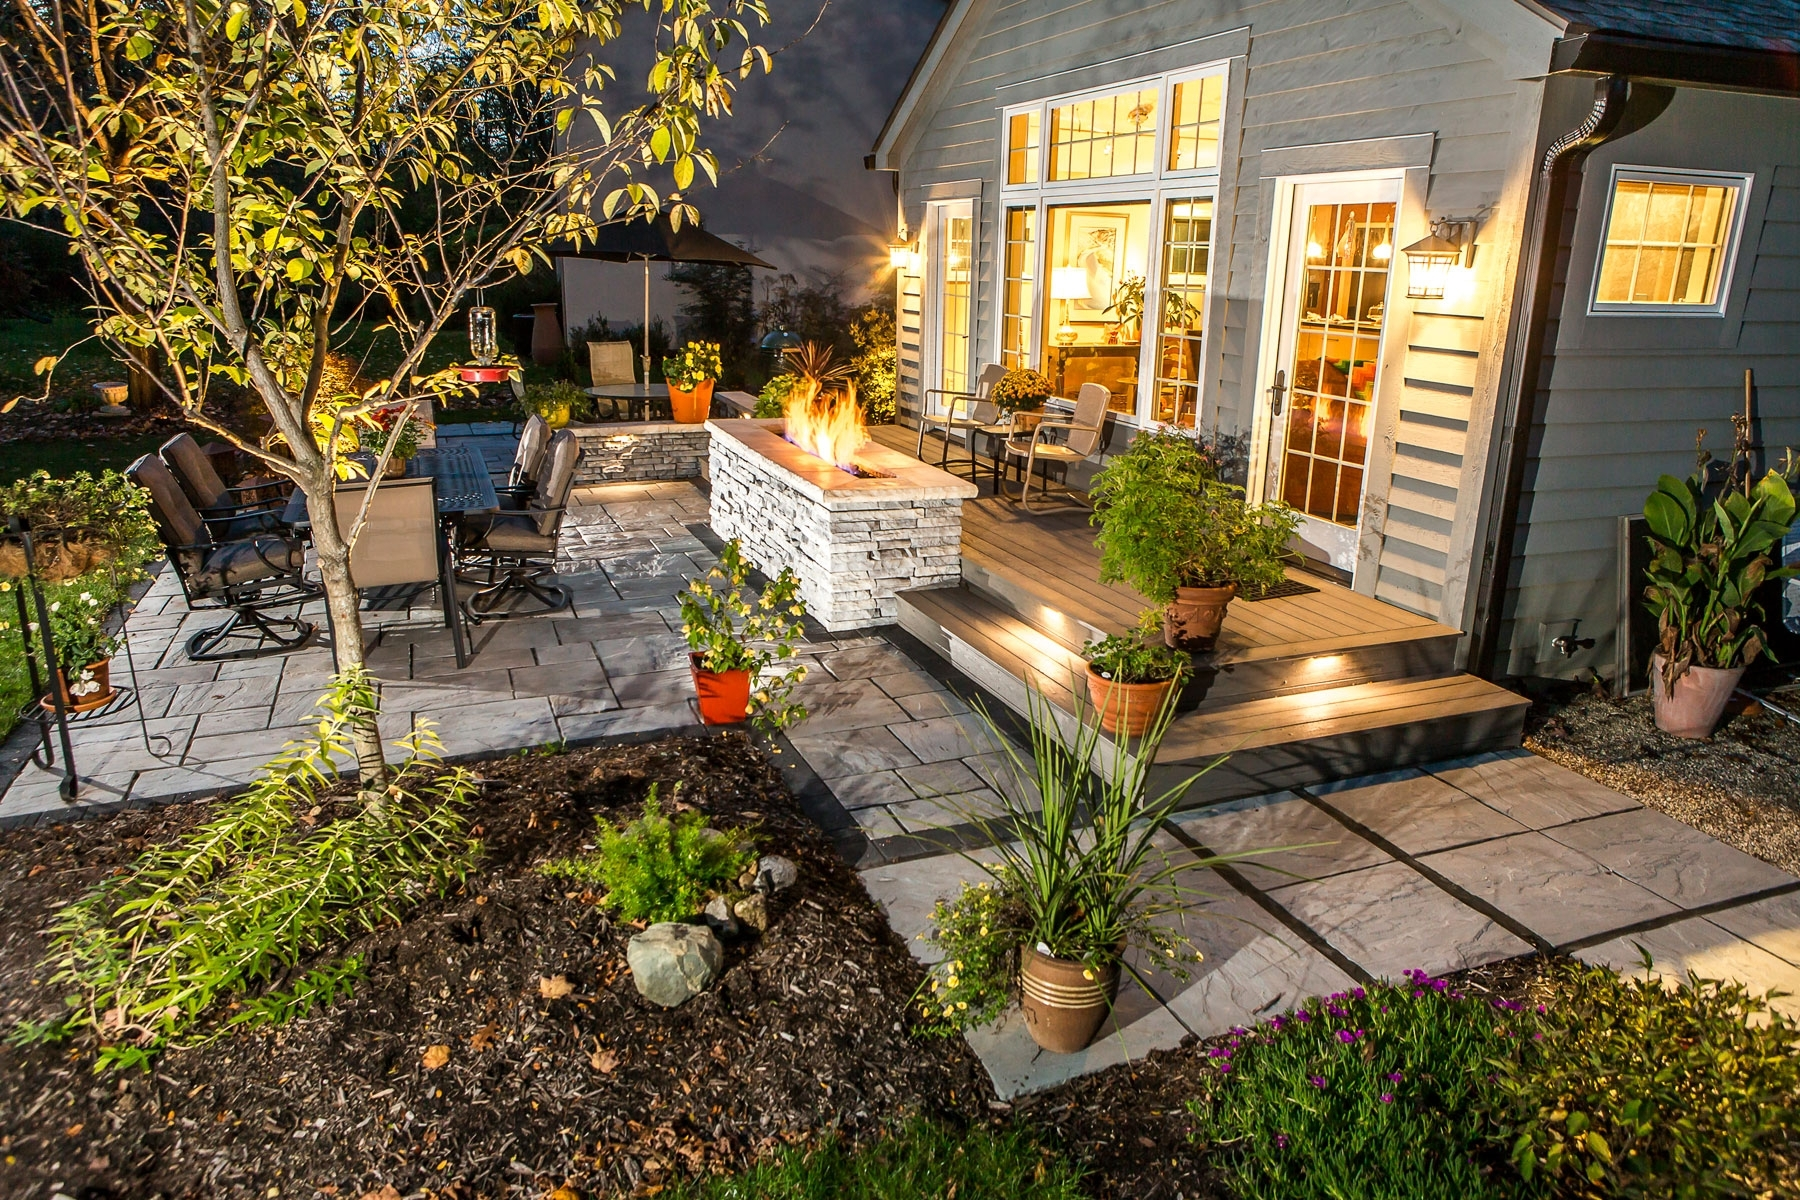 Outdoor Landscape Lanterns Intended For Popular Outdoor Landscape Lighting For Patios, Walkways, And Retaining Walls (View 14 of 20)